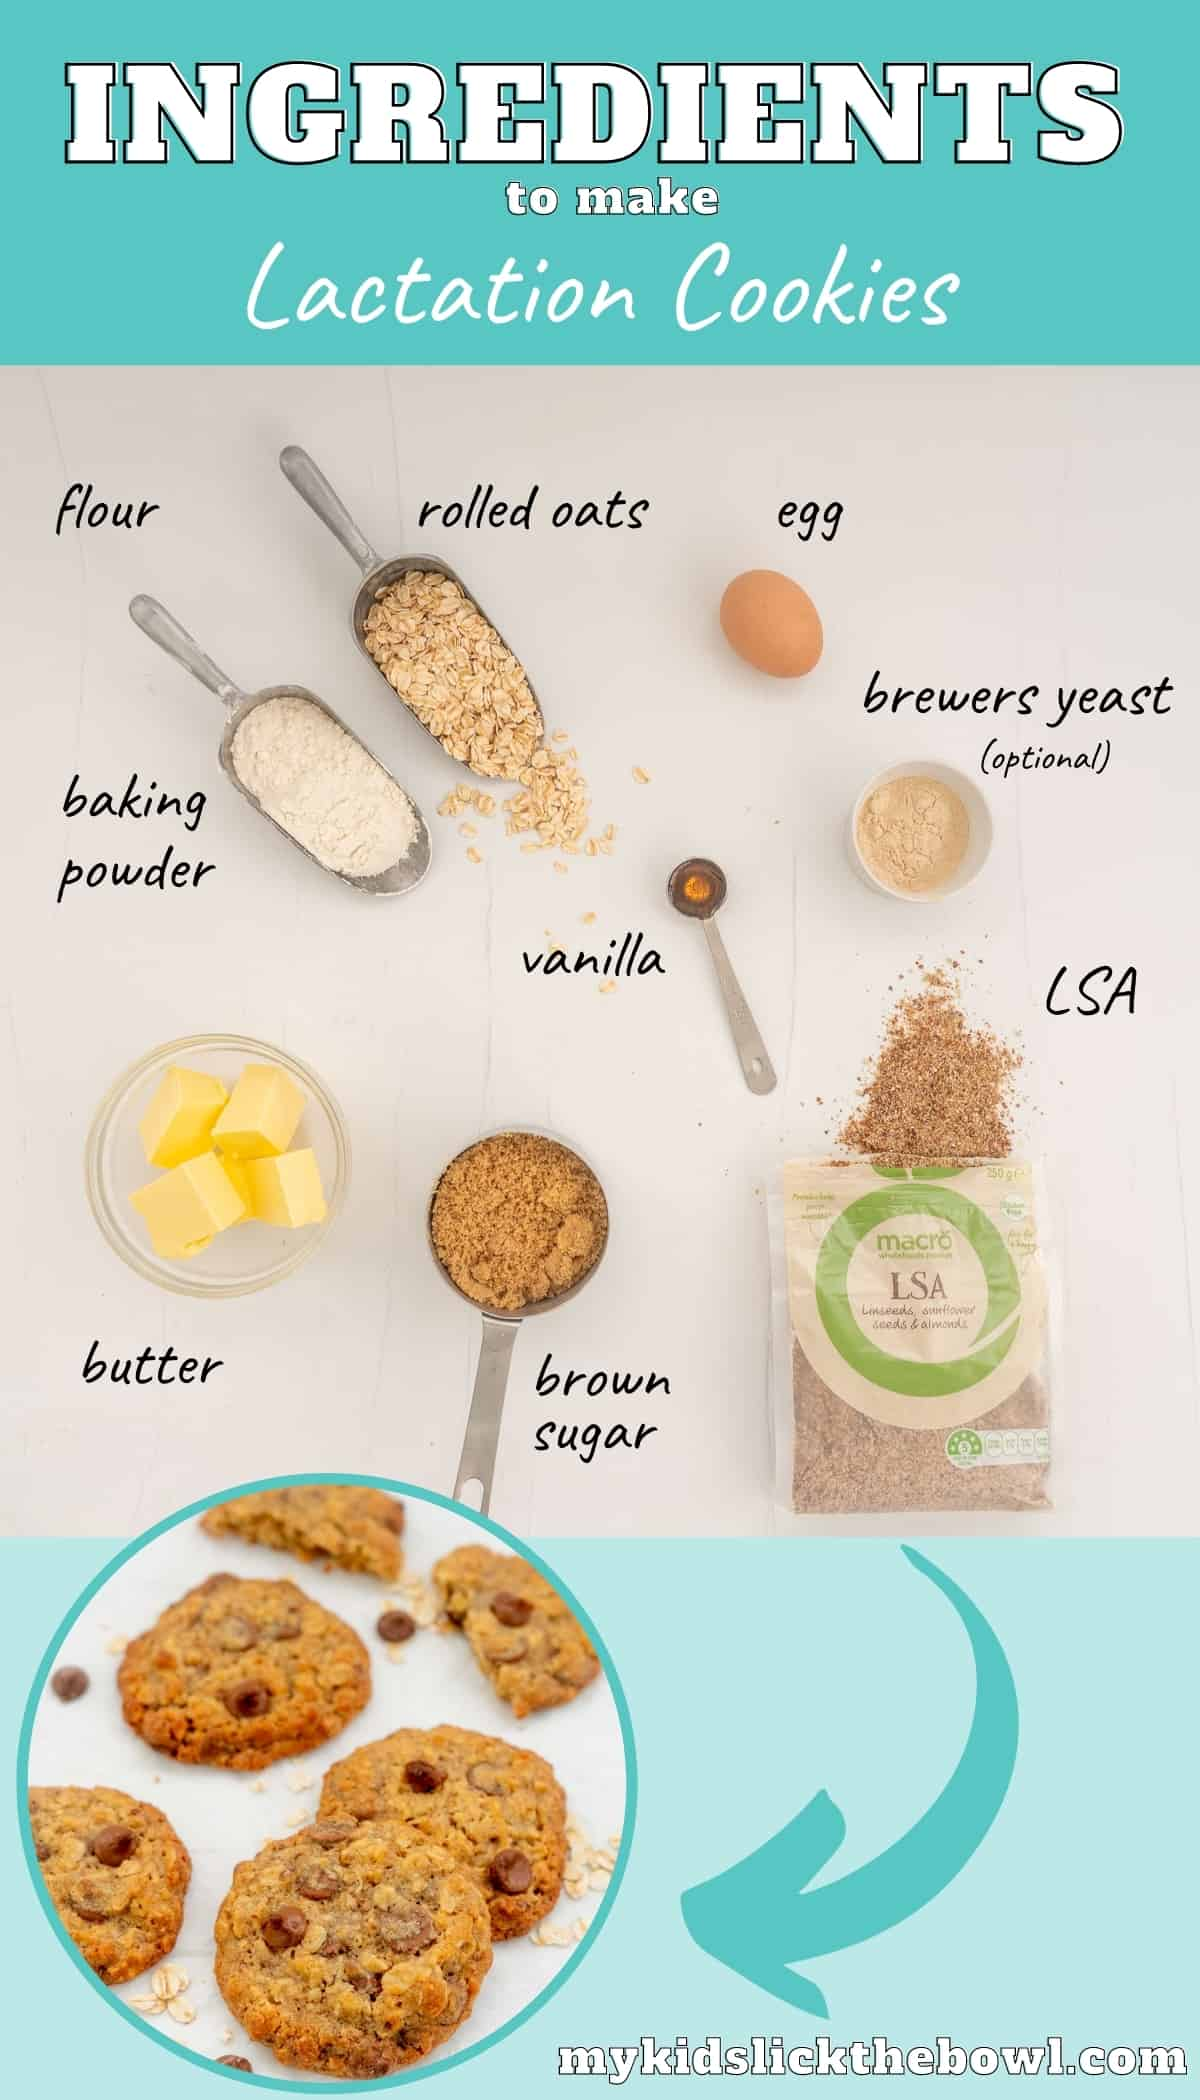 The ingredients to make lactation cookies laid out on a bench top with text overlay.